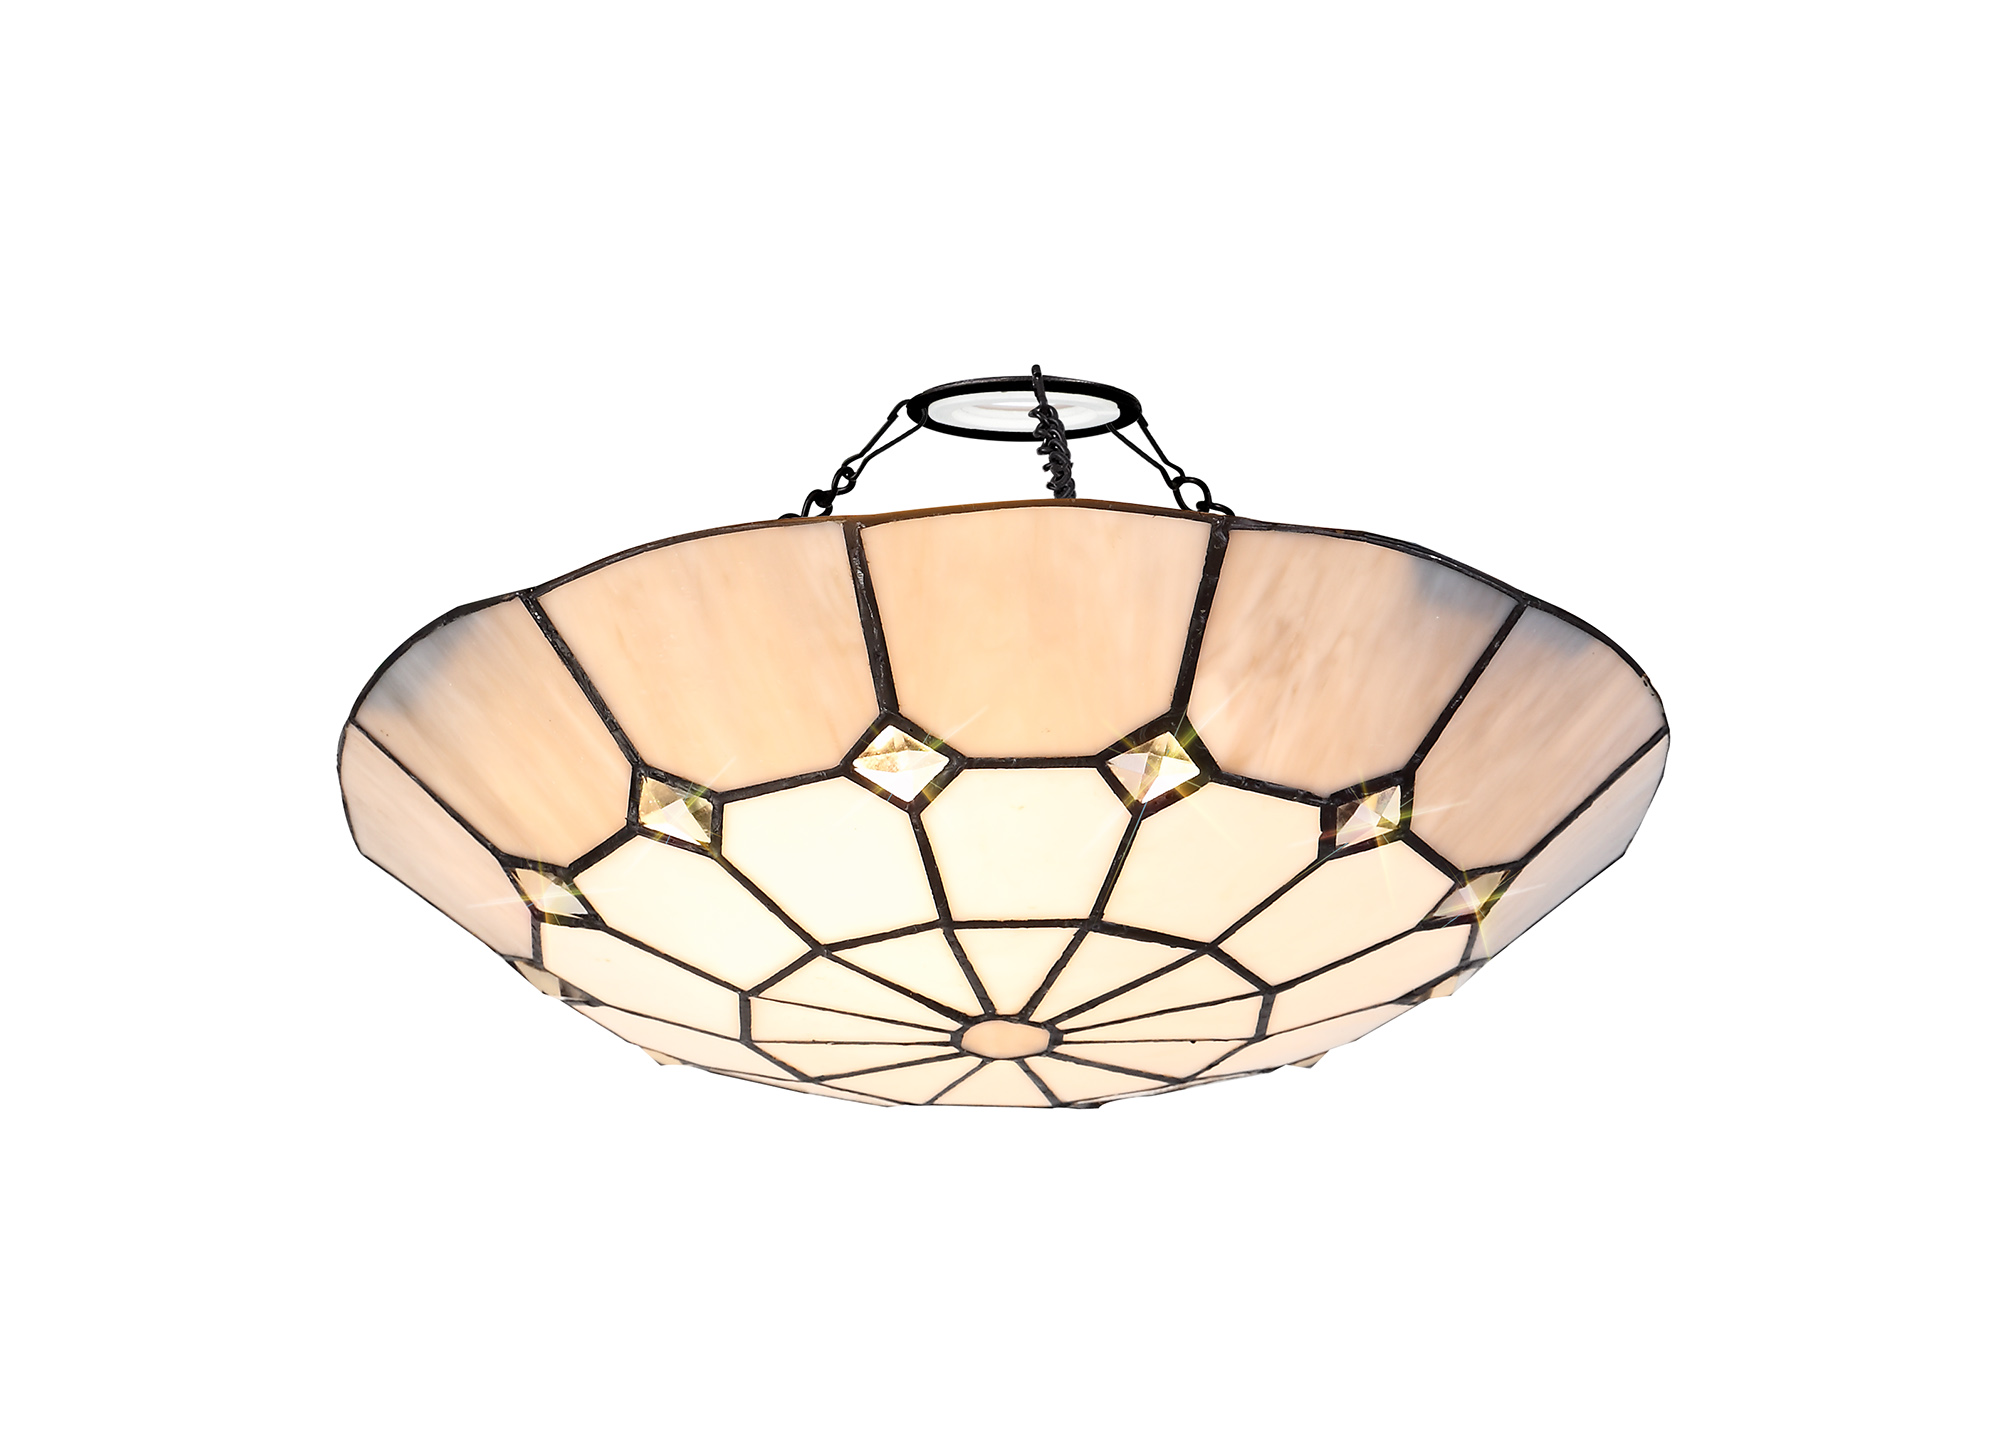 Tiffany 35cm Non-electric Uplighter Shade, Clear Crystal Centre and an Aged Antique Brass Trim